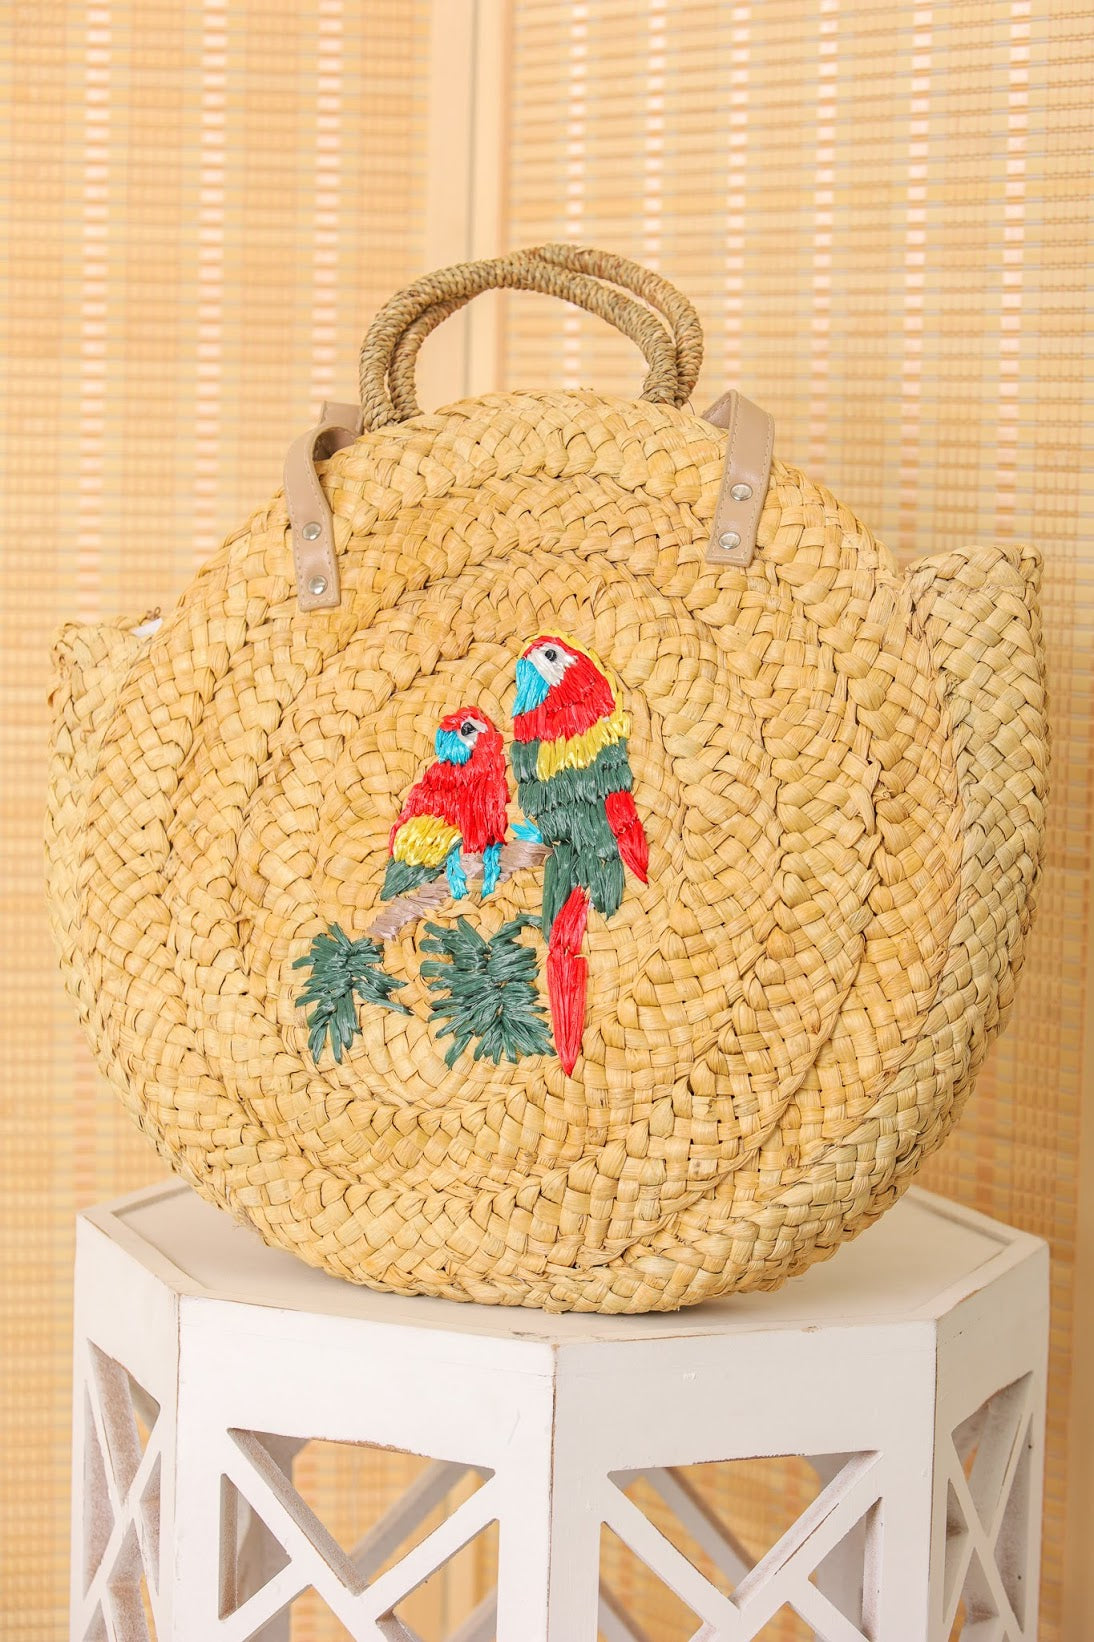 Love Birds Parrot Woven Straw Bag